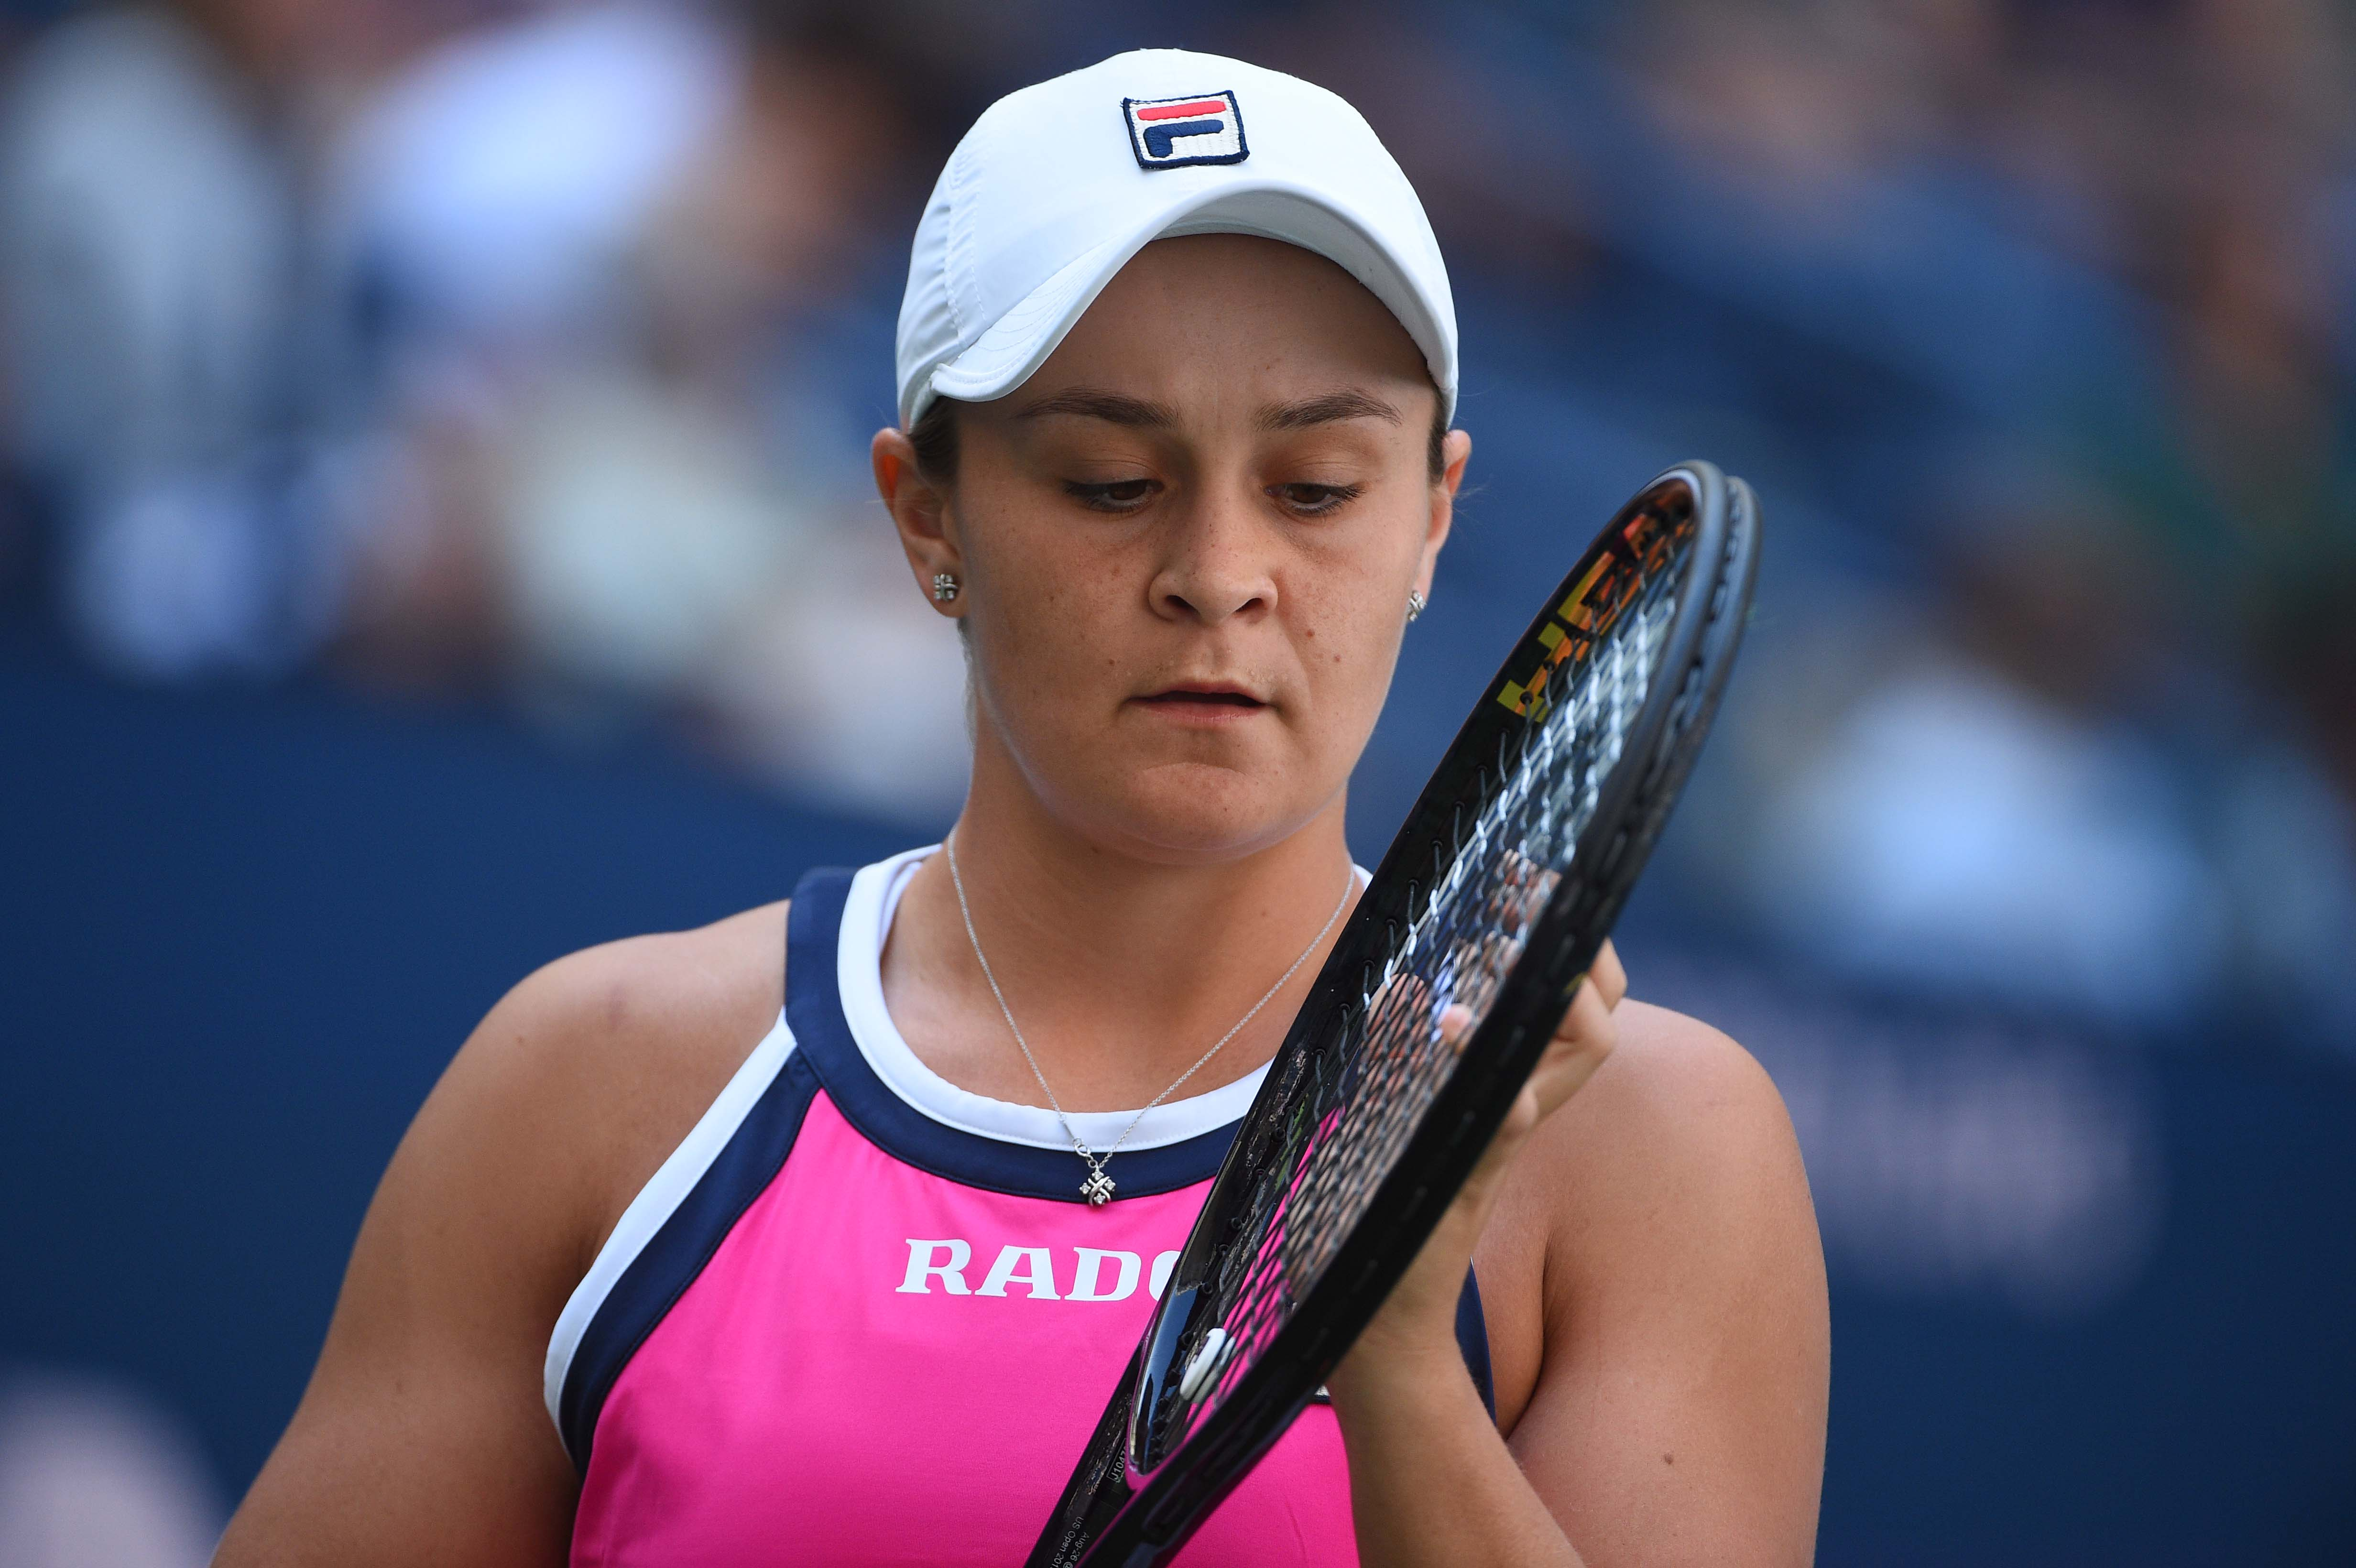 Ashleigh Barty focused during the 2019 US Open